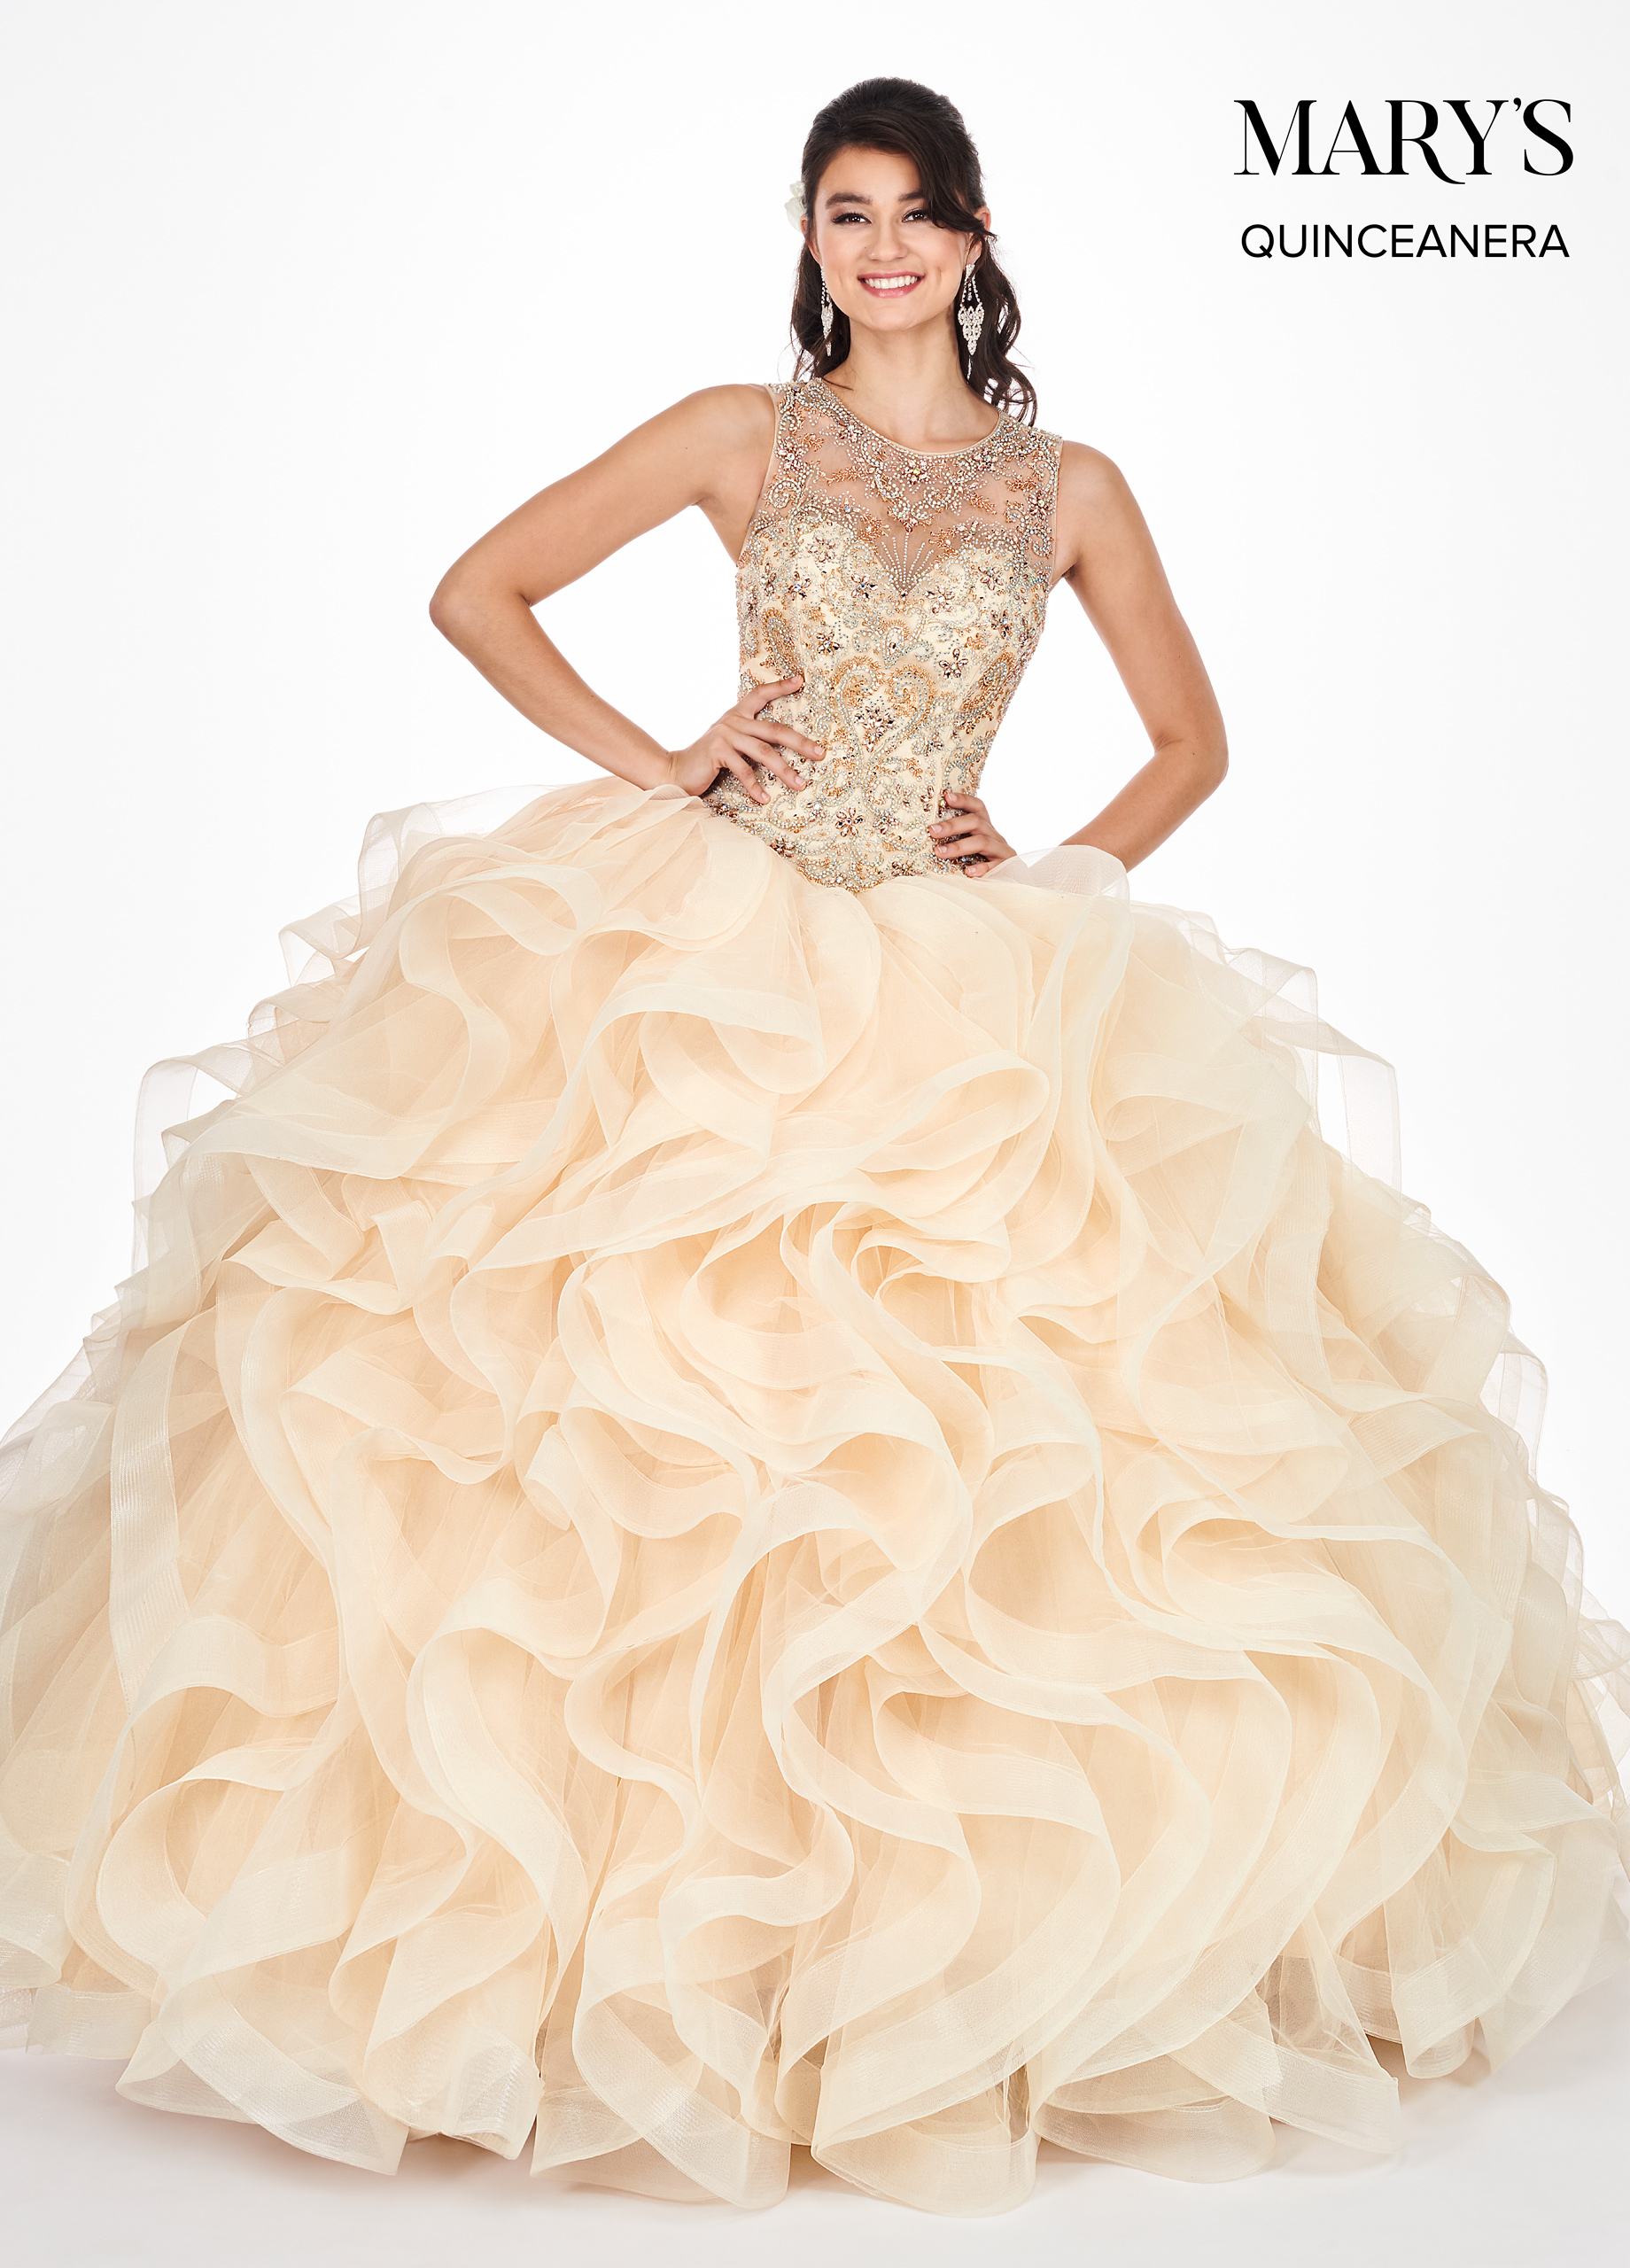 Marys Quinceanera Dresses | Mary's Quinceanera | Style - MQ2054